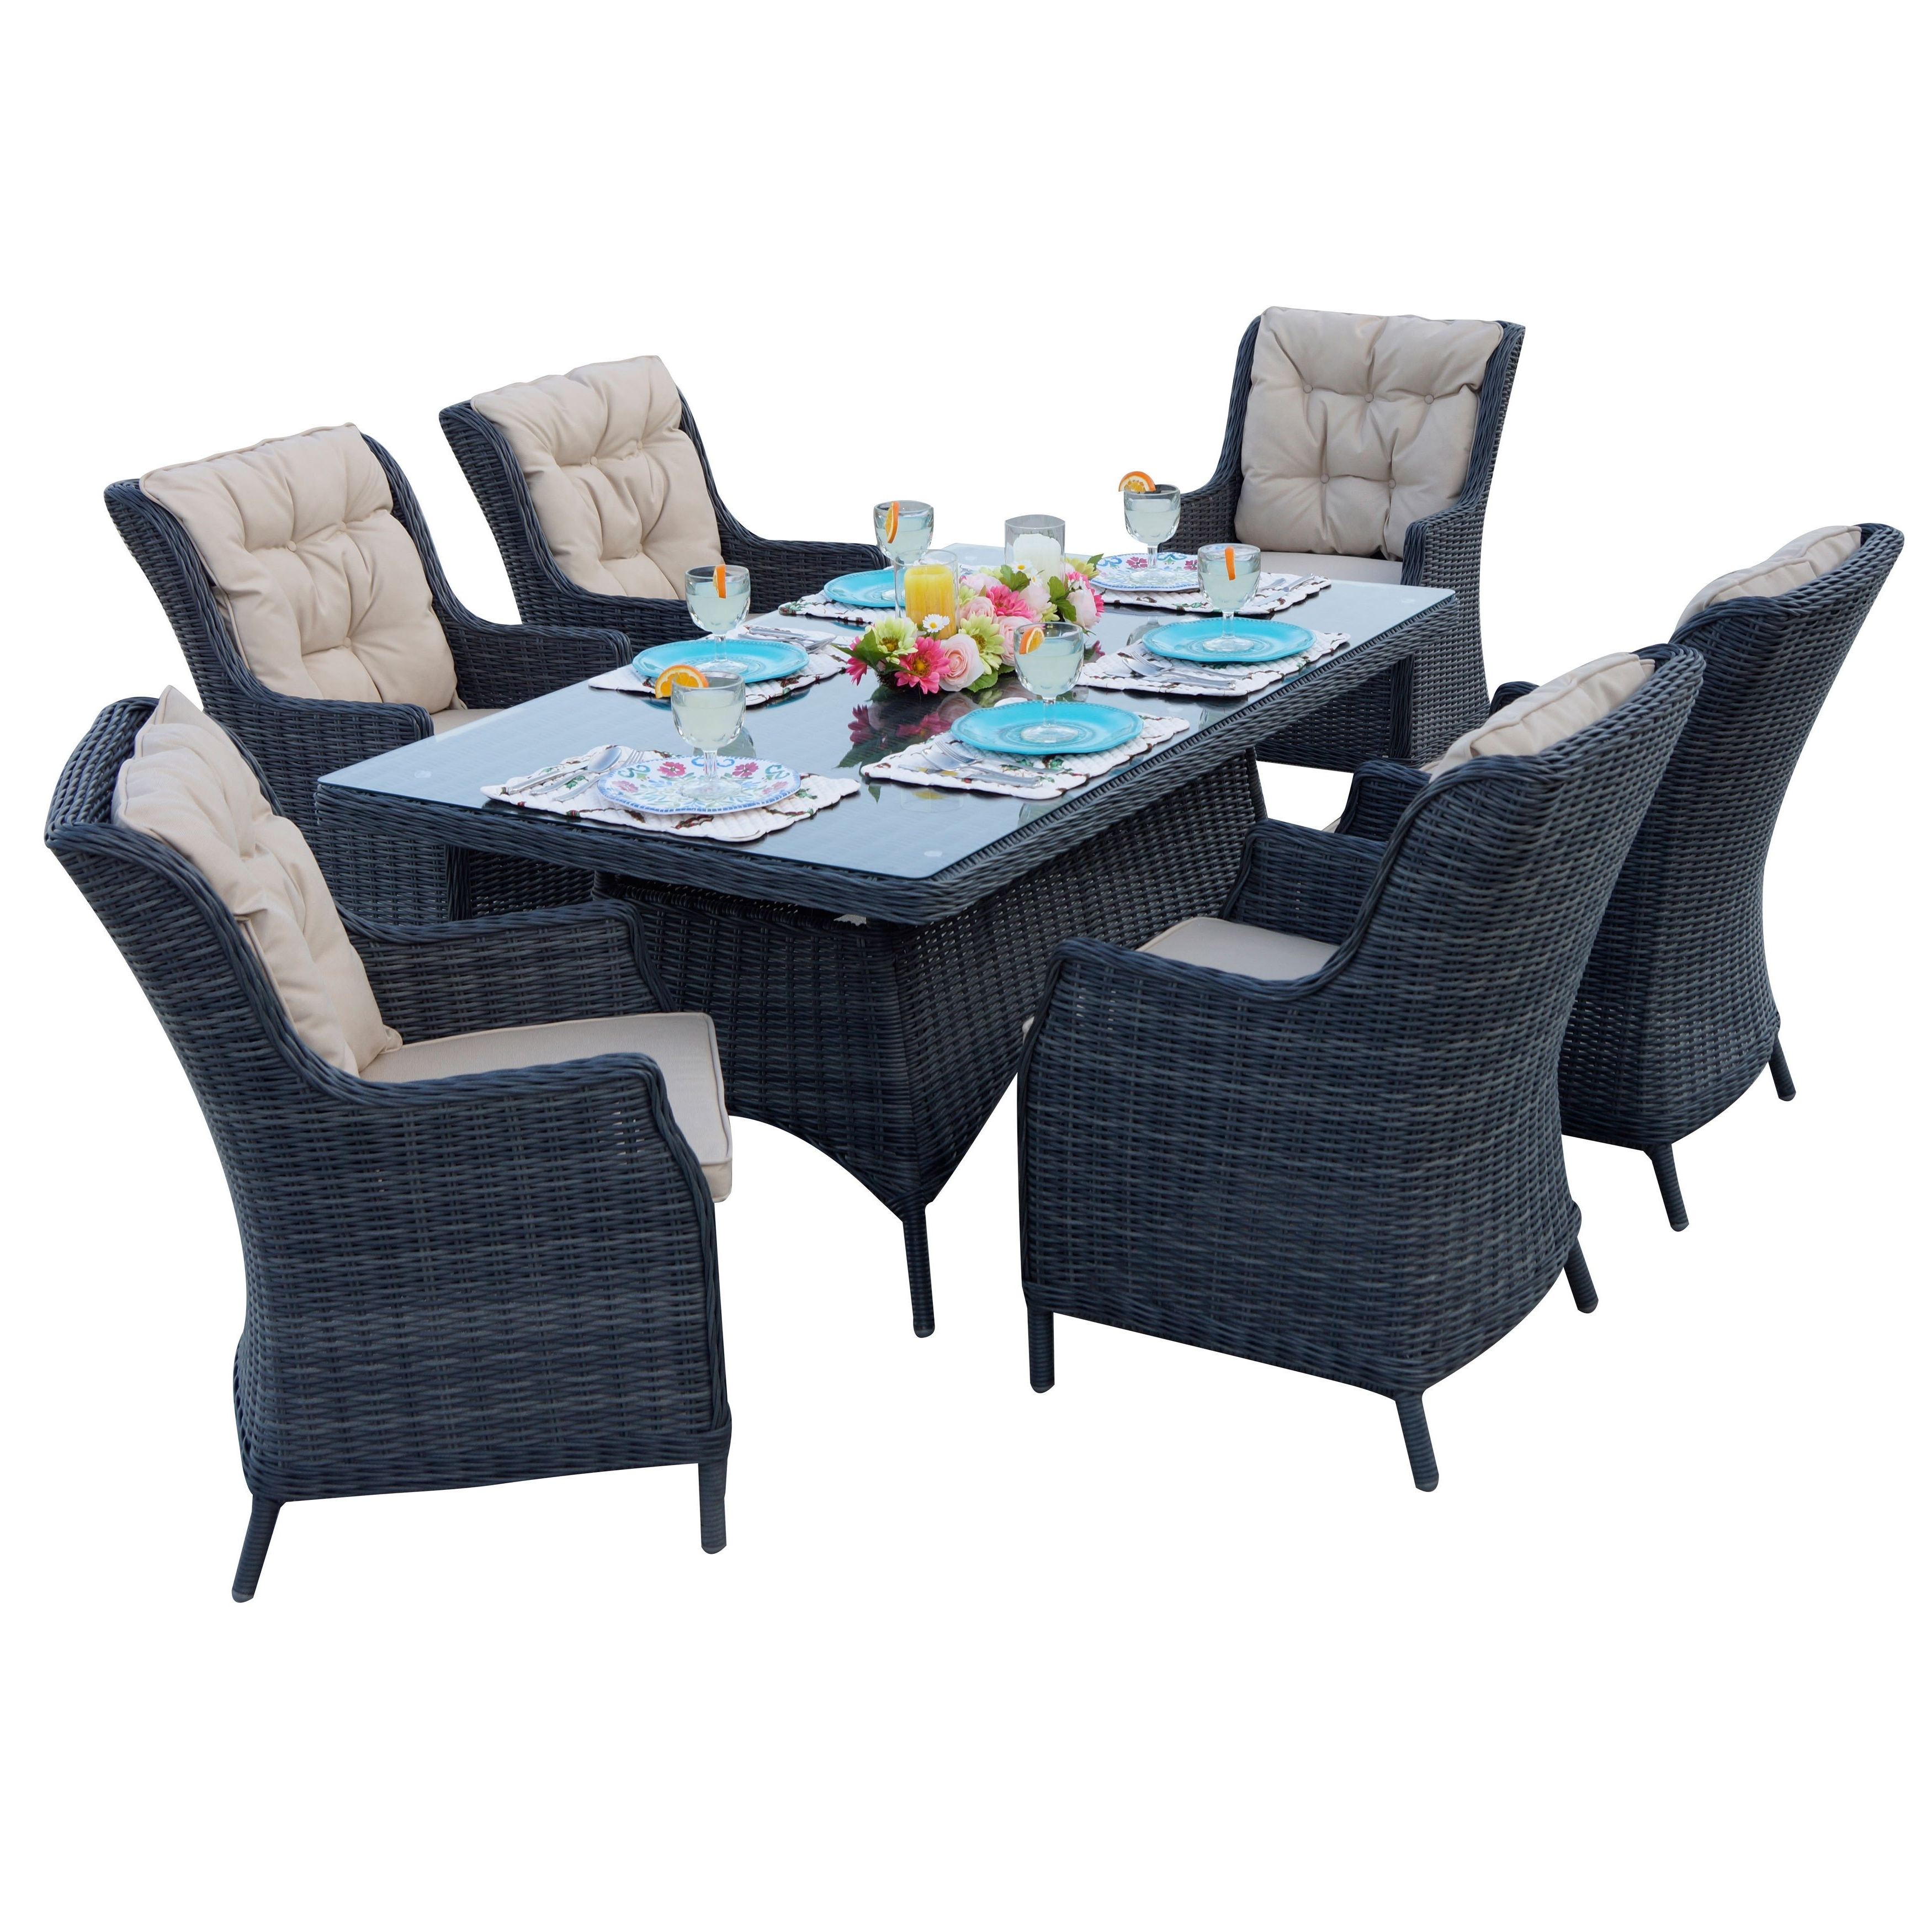 Valencia 72 Inch 6 Piece Dining Sets inside Well-liked Darlee Valencia Black Resin Wicker Dining Set